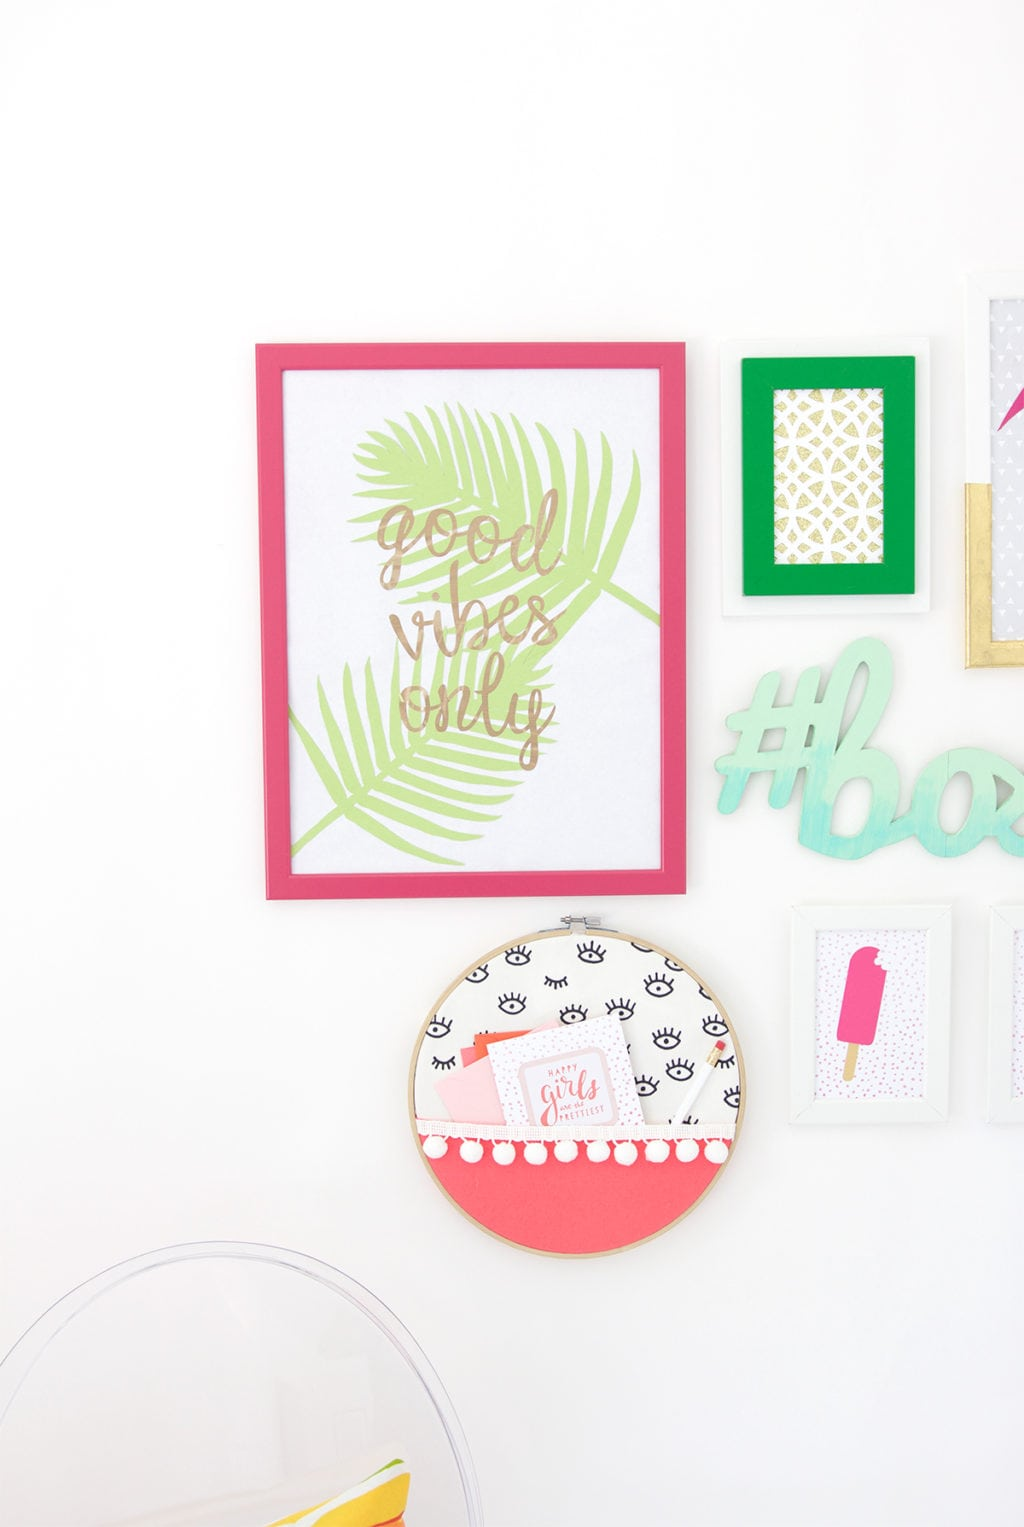 Gallery Walls can be intimidating, which is why I've avoided them until recently. Create your very own colorful Cricut Explore Gallery Wall with just a few cheap frames and some simple craft supplies.